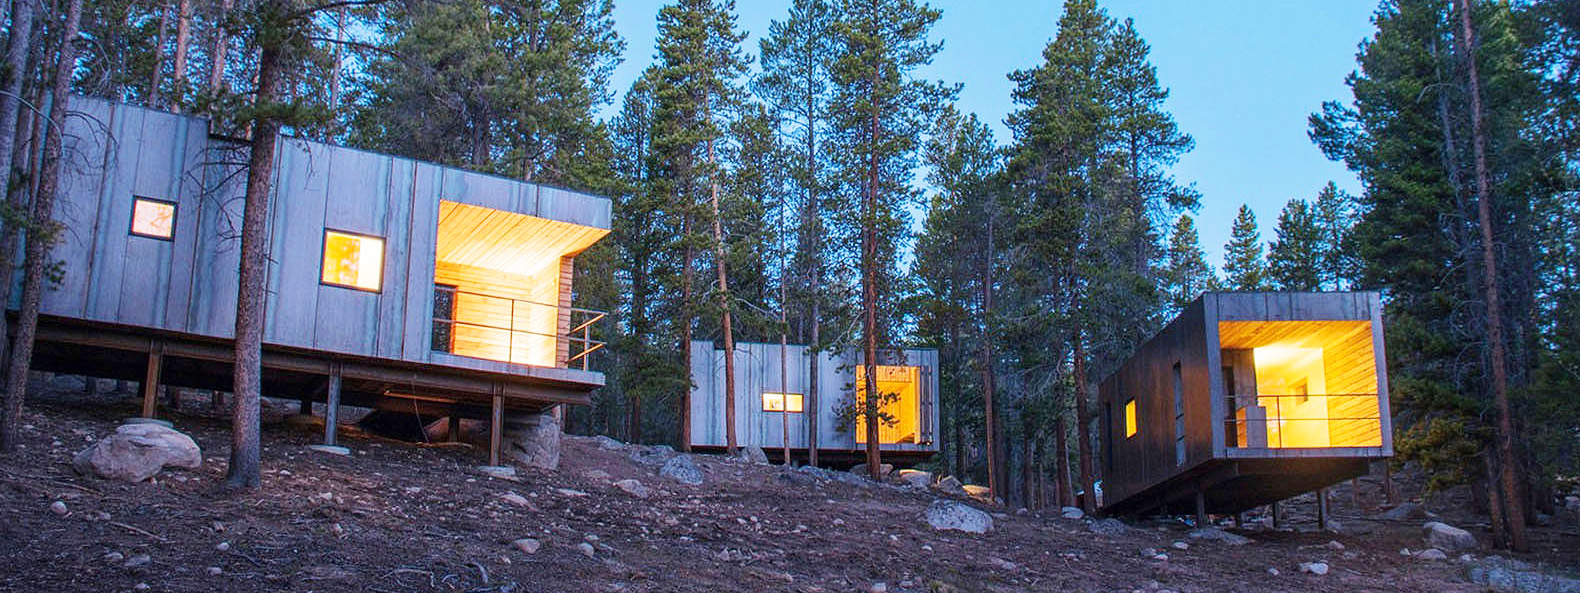 7 new micro-cabins in Colorado provide superior insulation in extreme weather